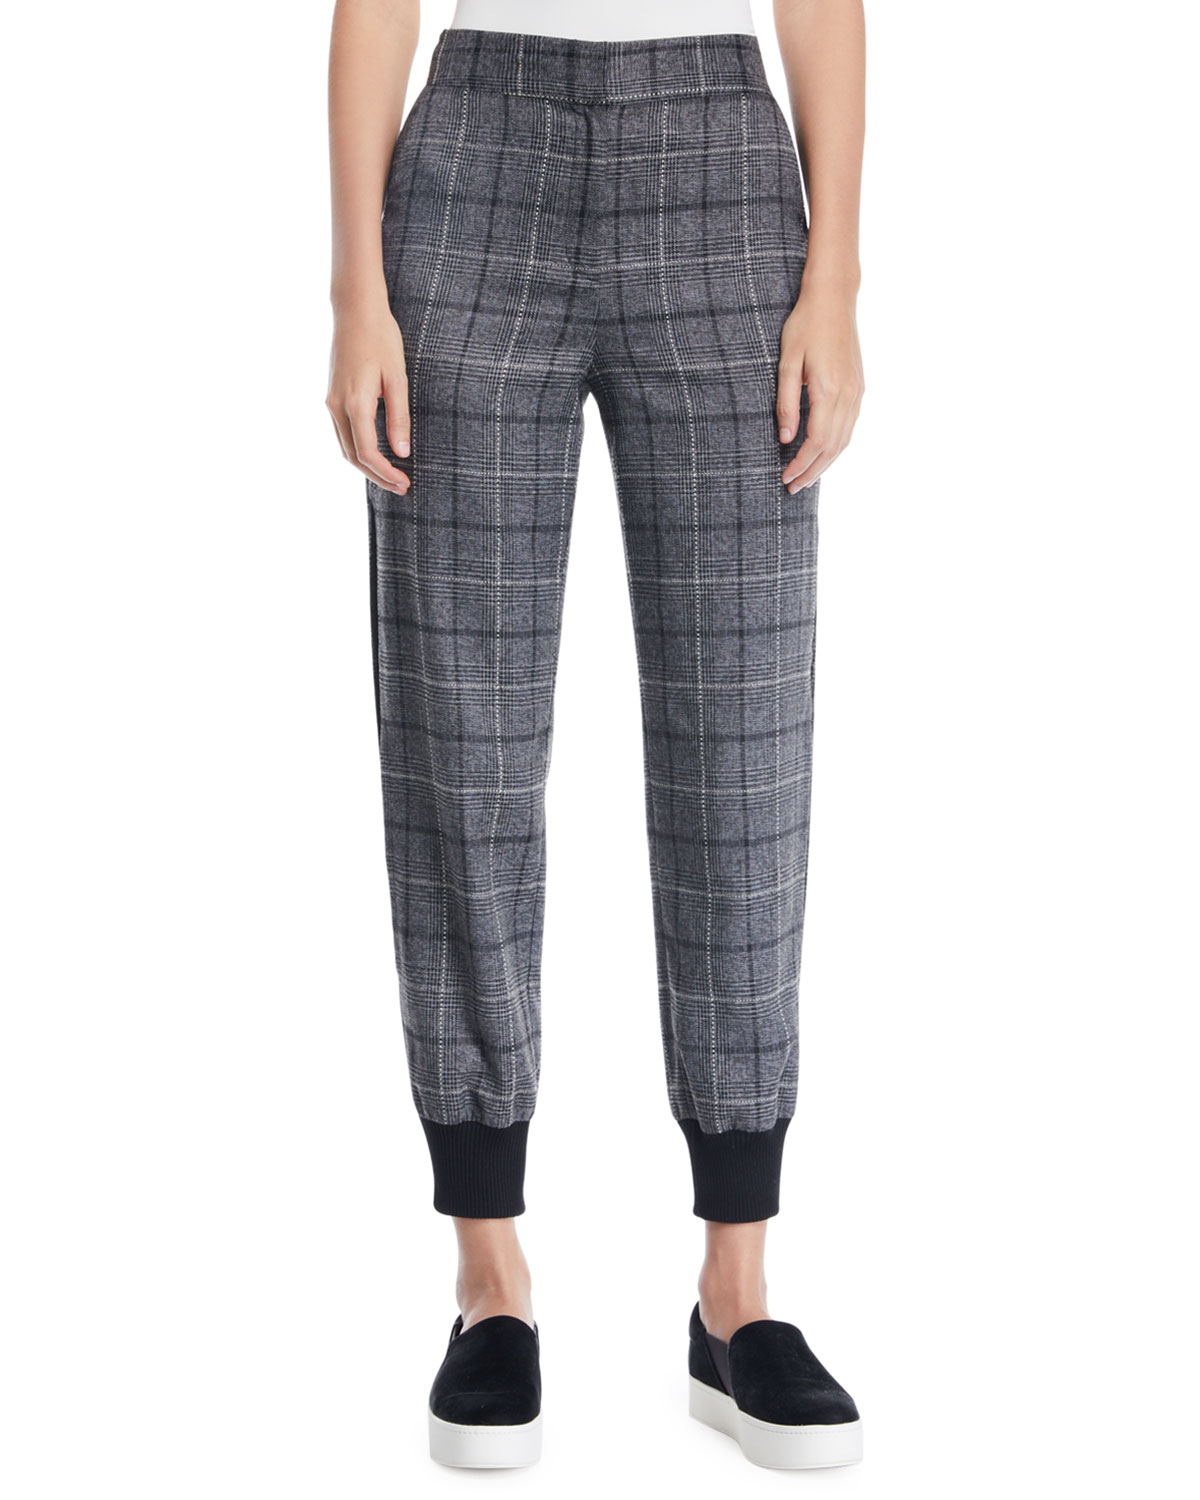 MARLED BY REUNITED Plaid Split-Leg Jogger Pants in Gray